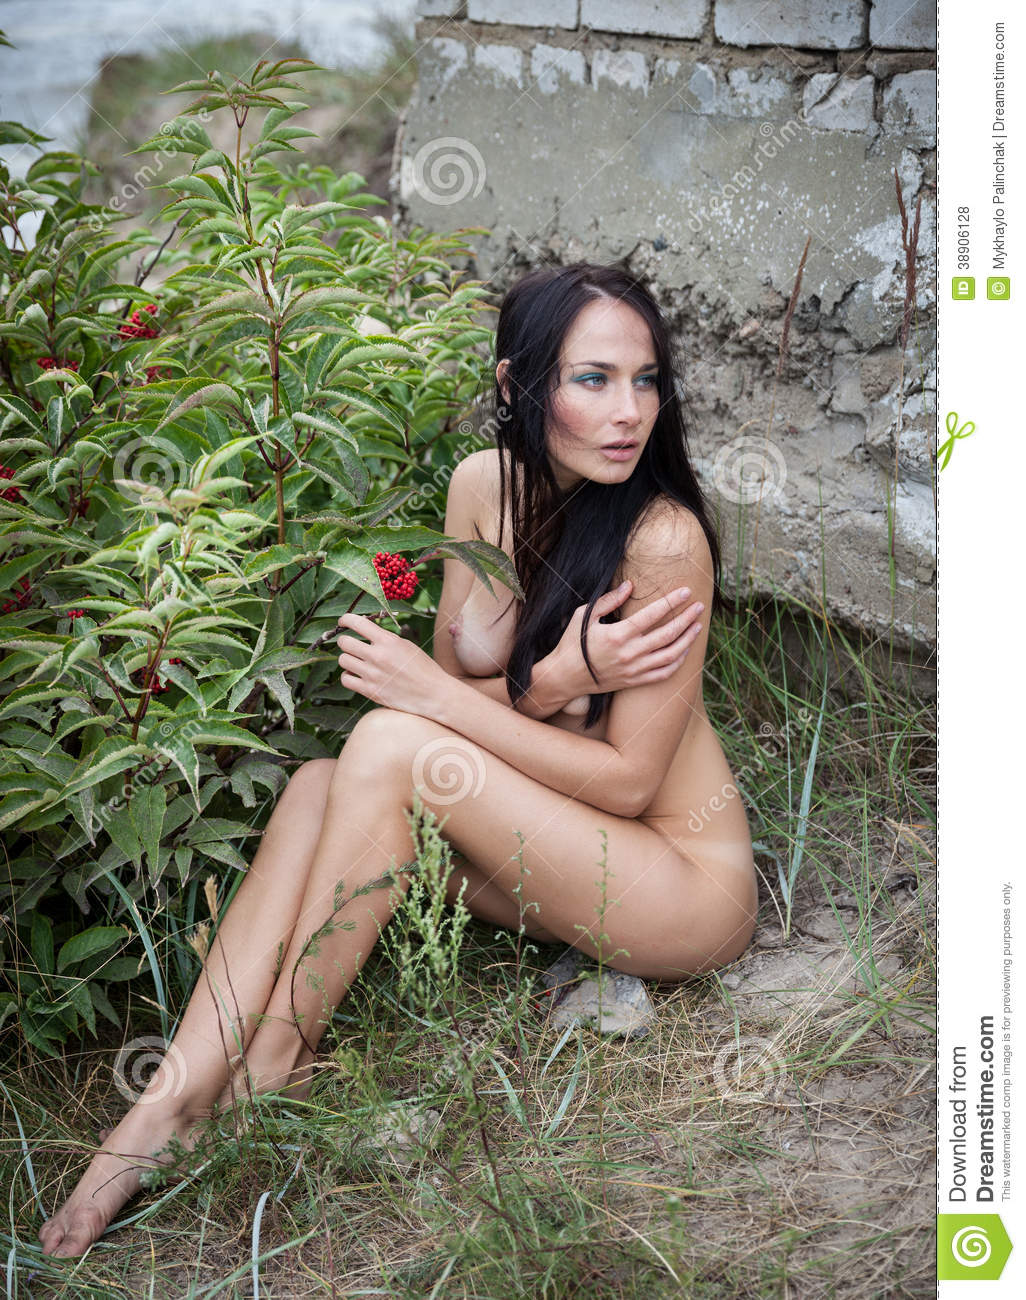 Nude Woman Against Nature Background Stock Photo - Image -9950